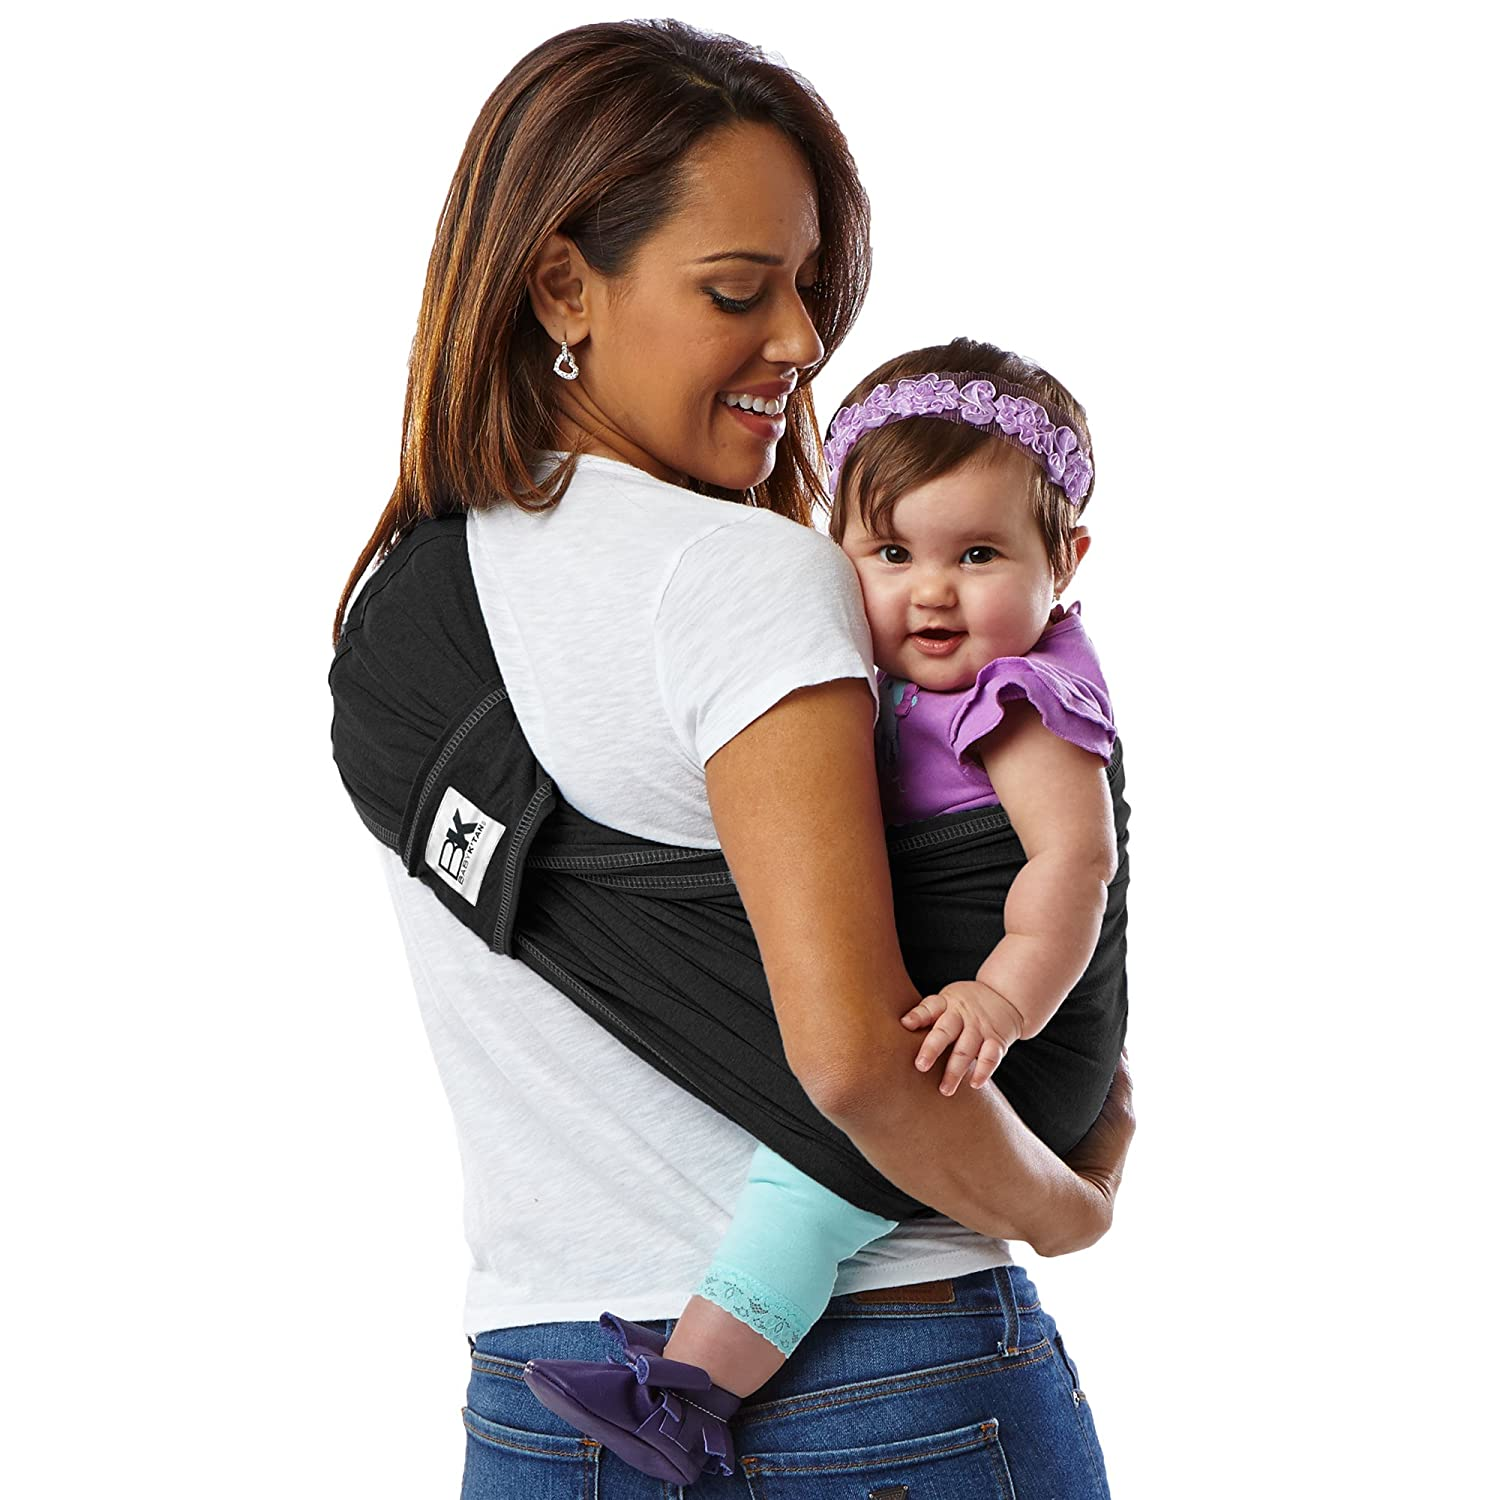 No Rings or Buckles Baby K/'tan Print Baby Wrap Carrier Leopard Love Carry Newborn up to 35 lbs Simple Wrap Holder for Babywearing W Dress up to 0 XXS Infant and Child Sling